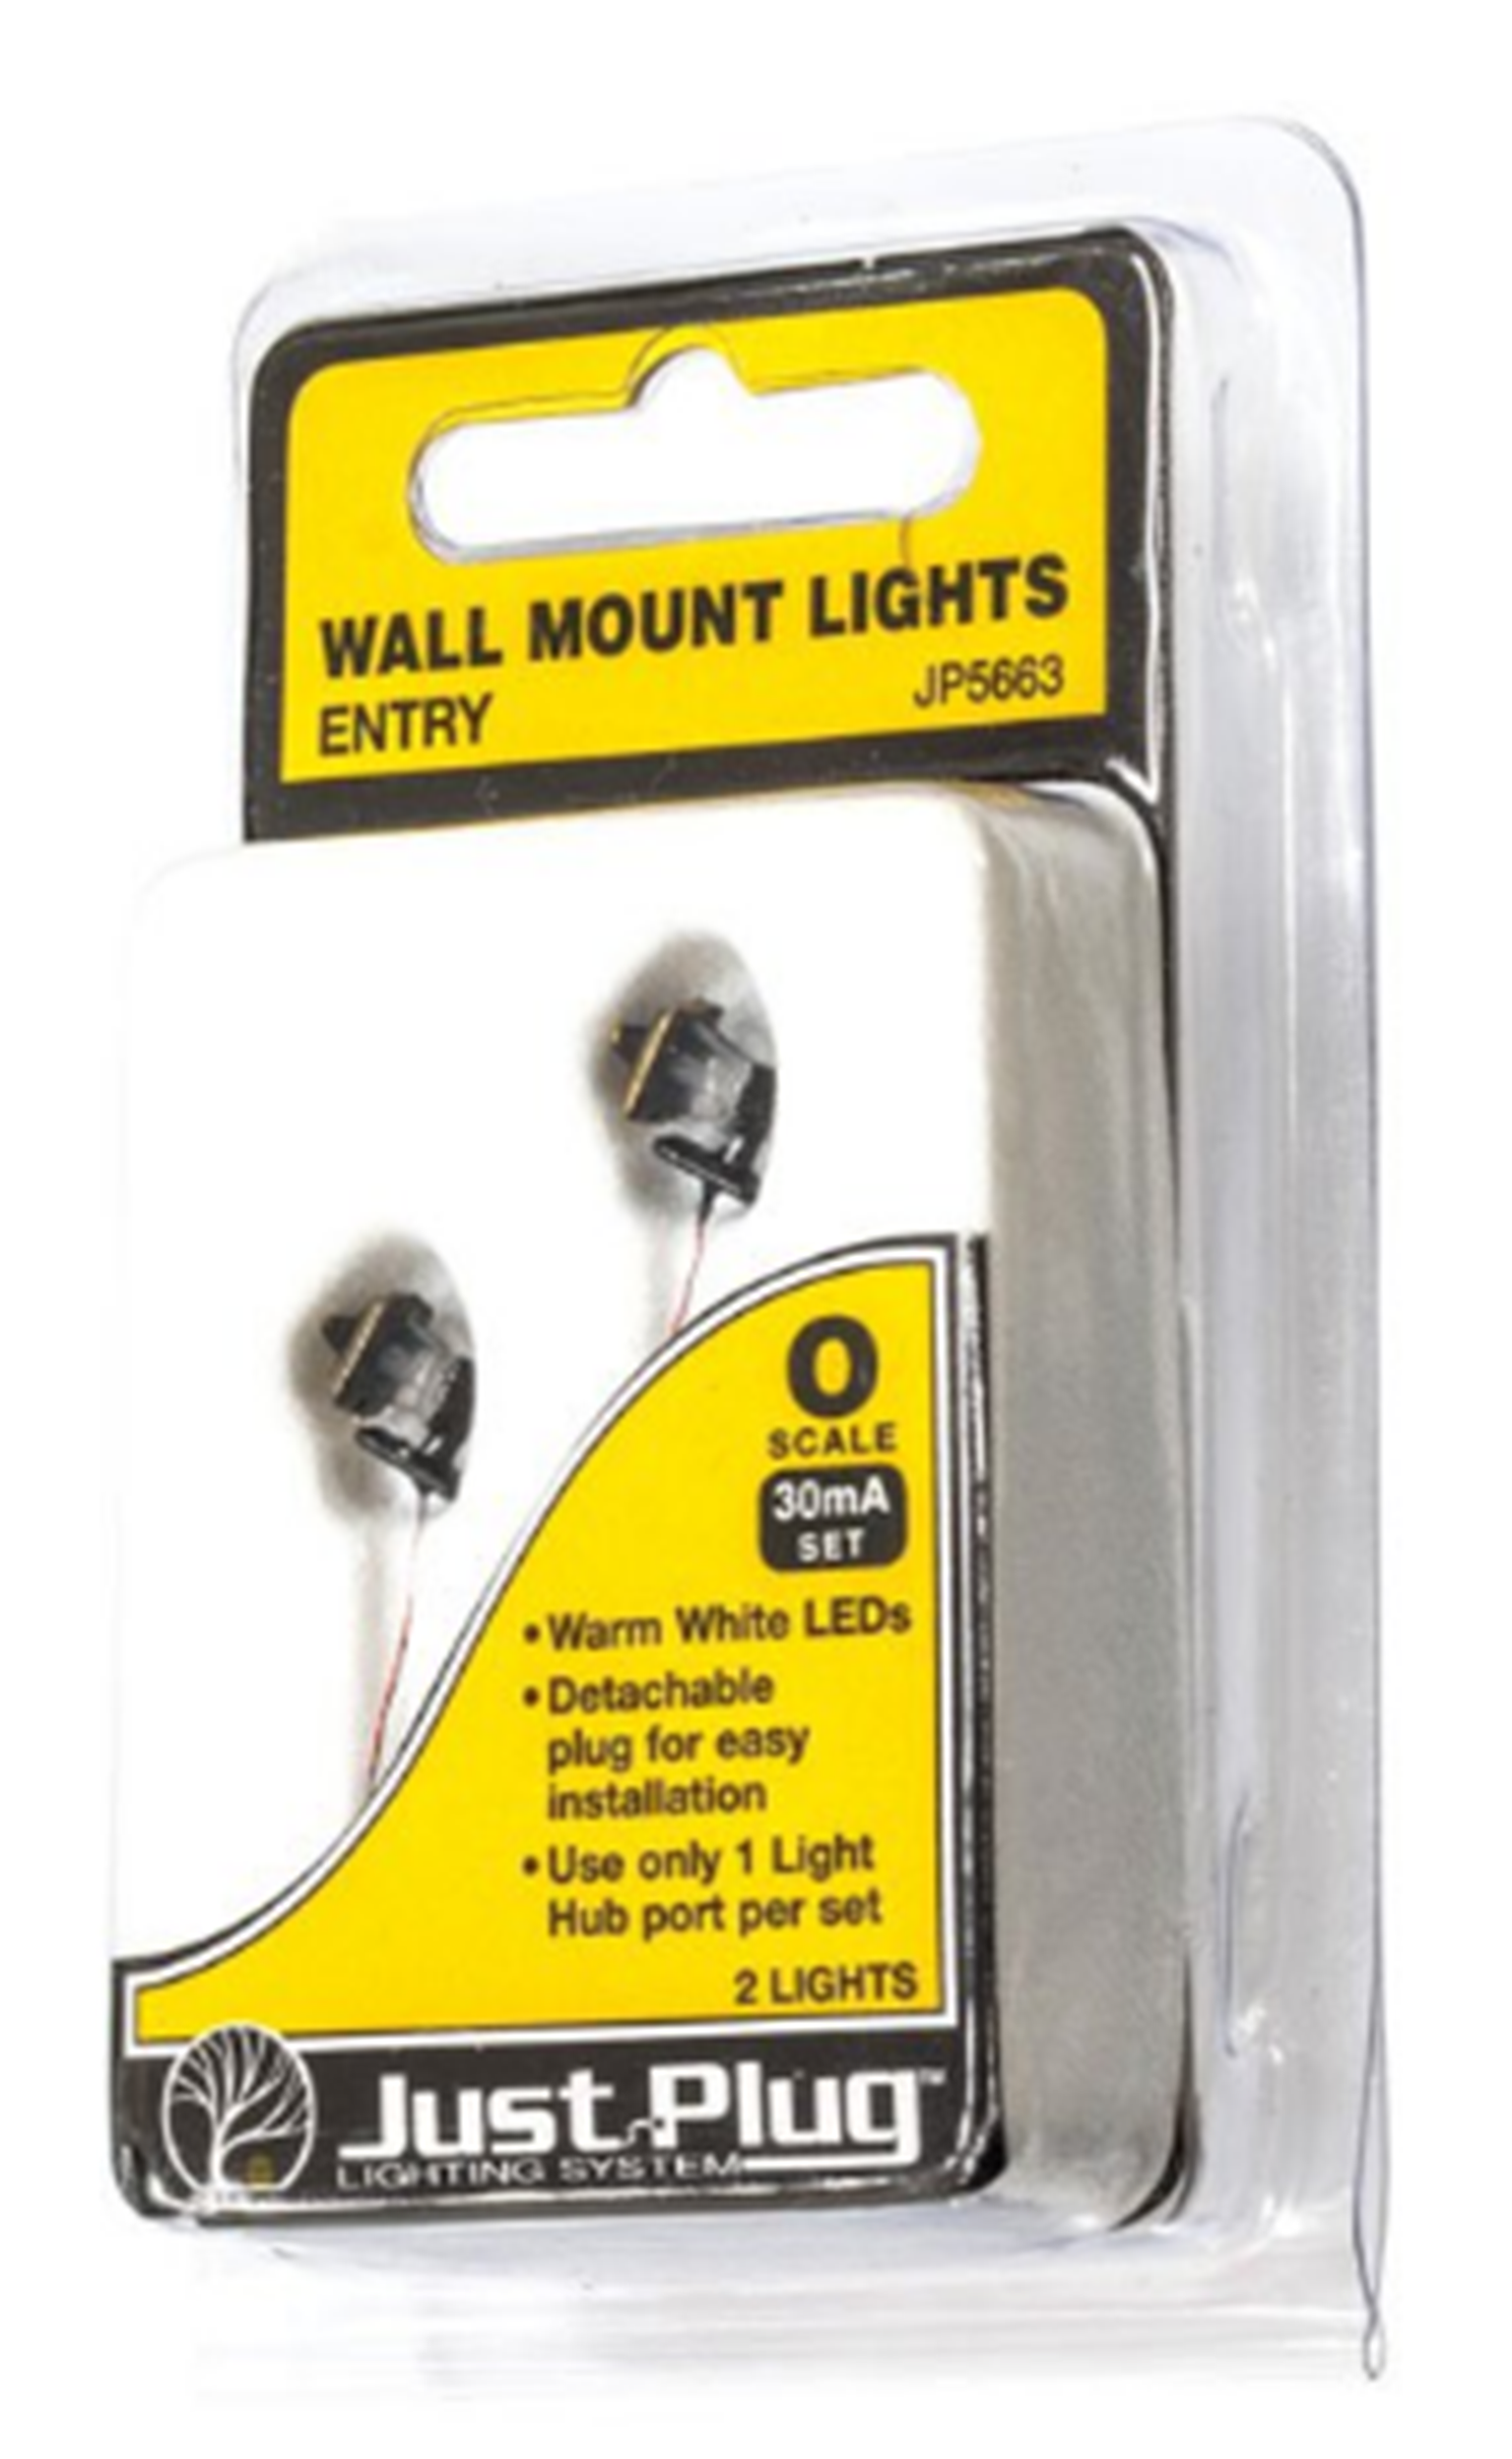 Entry Wall Mount Lights - O Scale